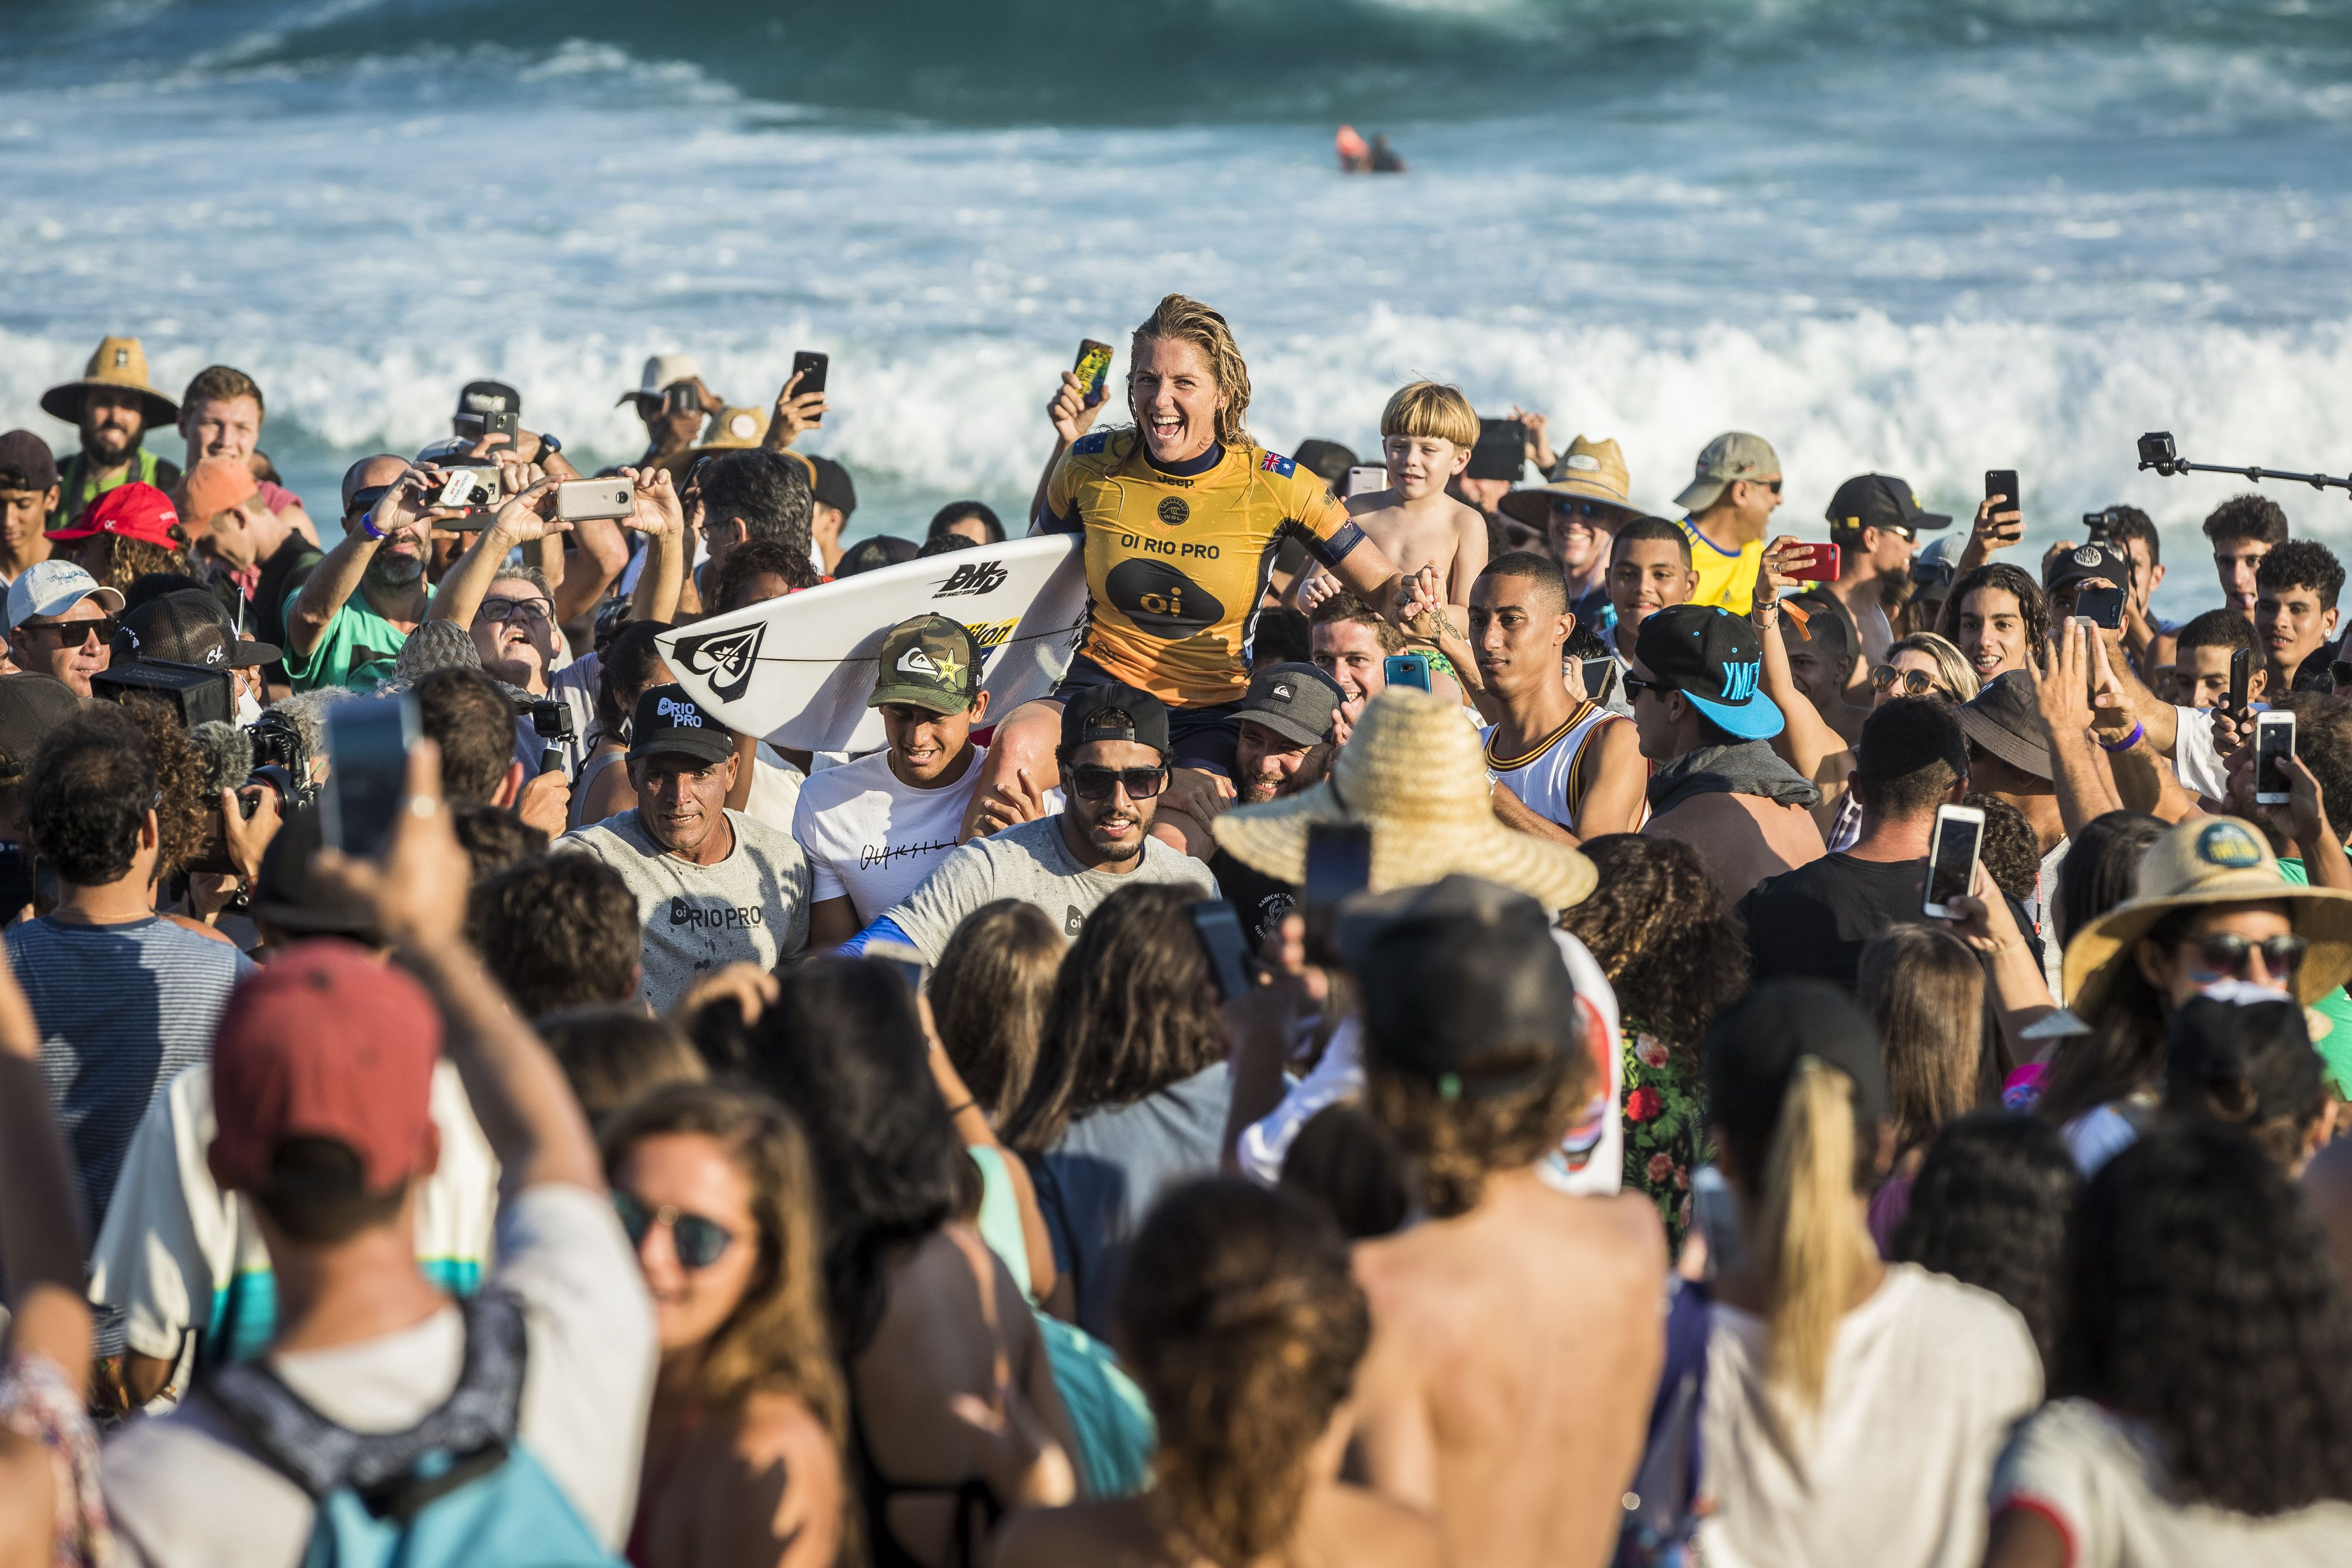 Stephanie Gilmore (AUS) take the win by defeating Lakey Peterson (USA) in the final of The Oi Rio Pro 2018 in Saquarema , Brazil